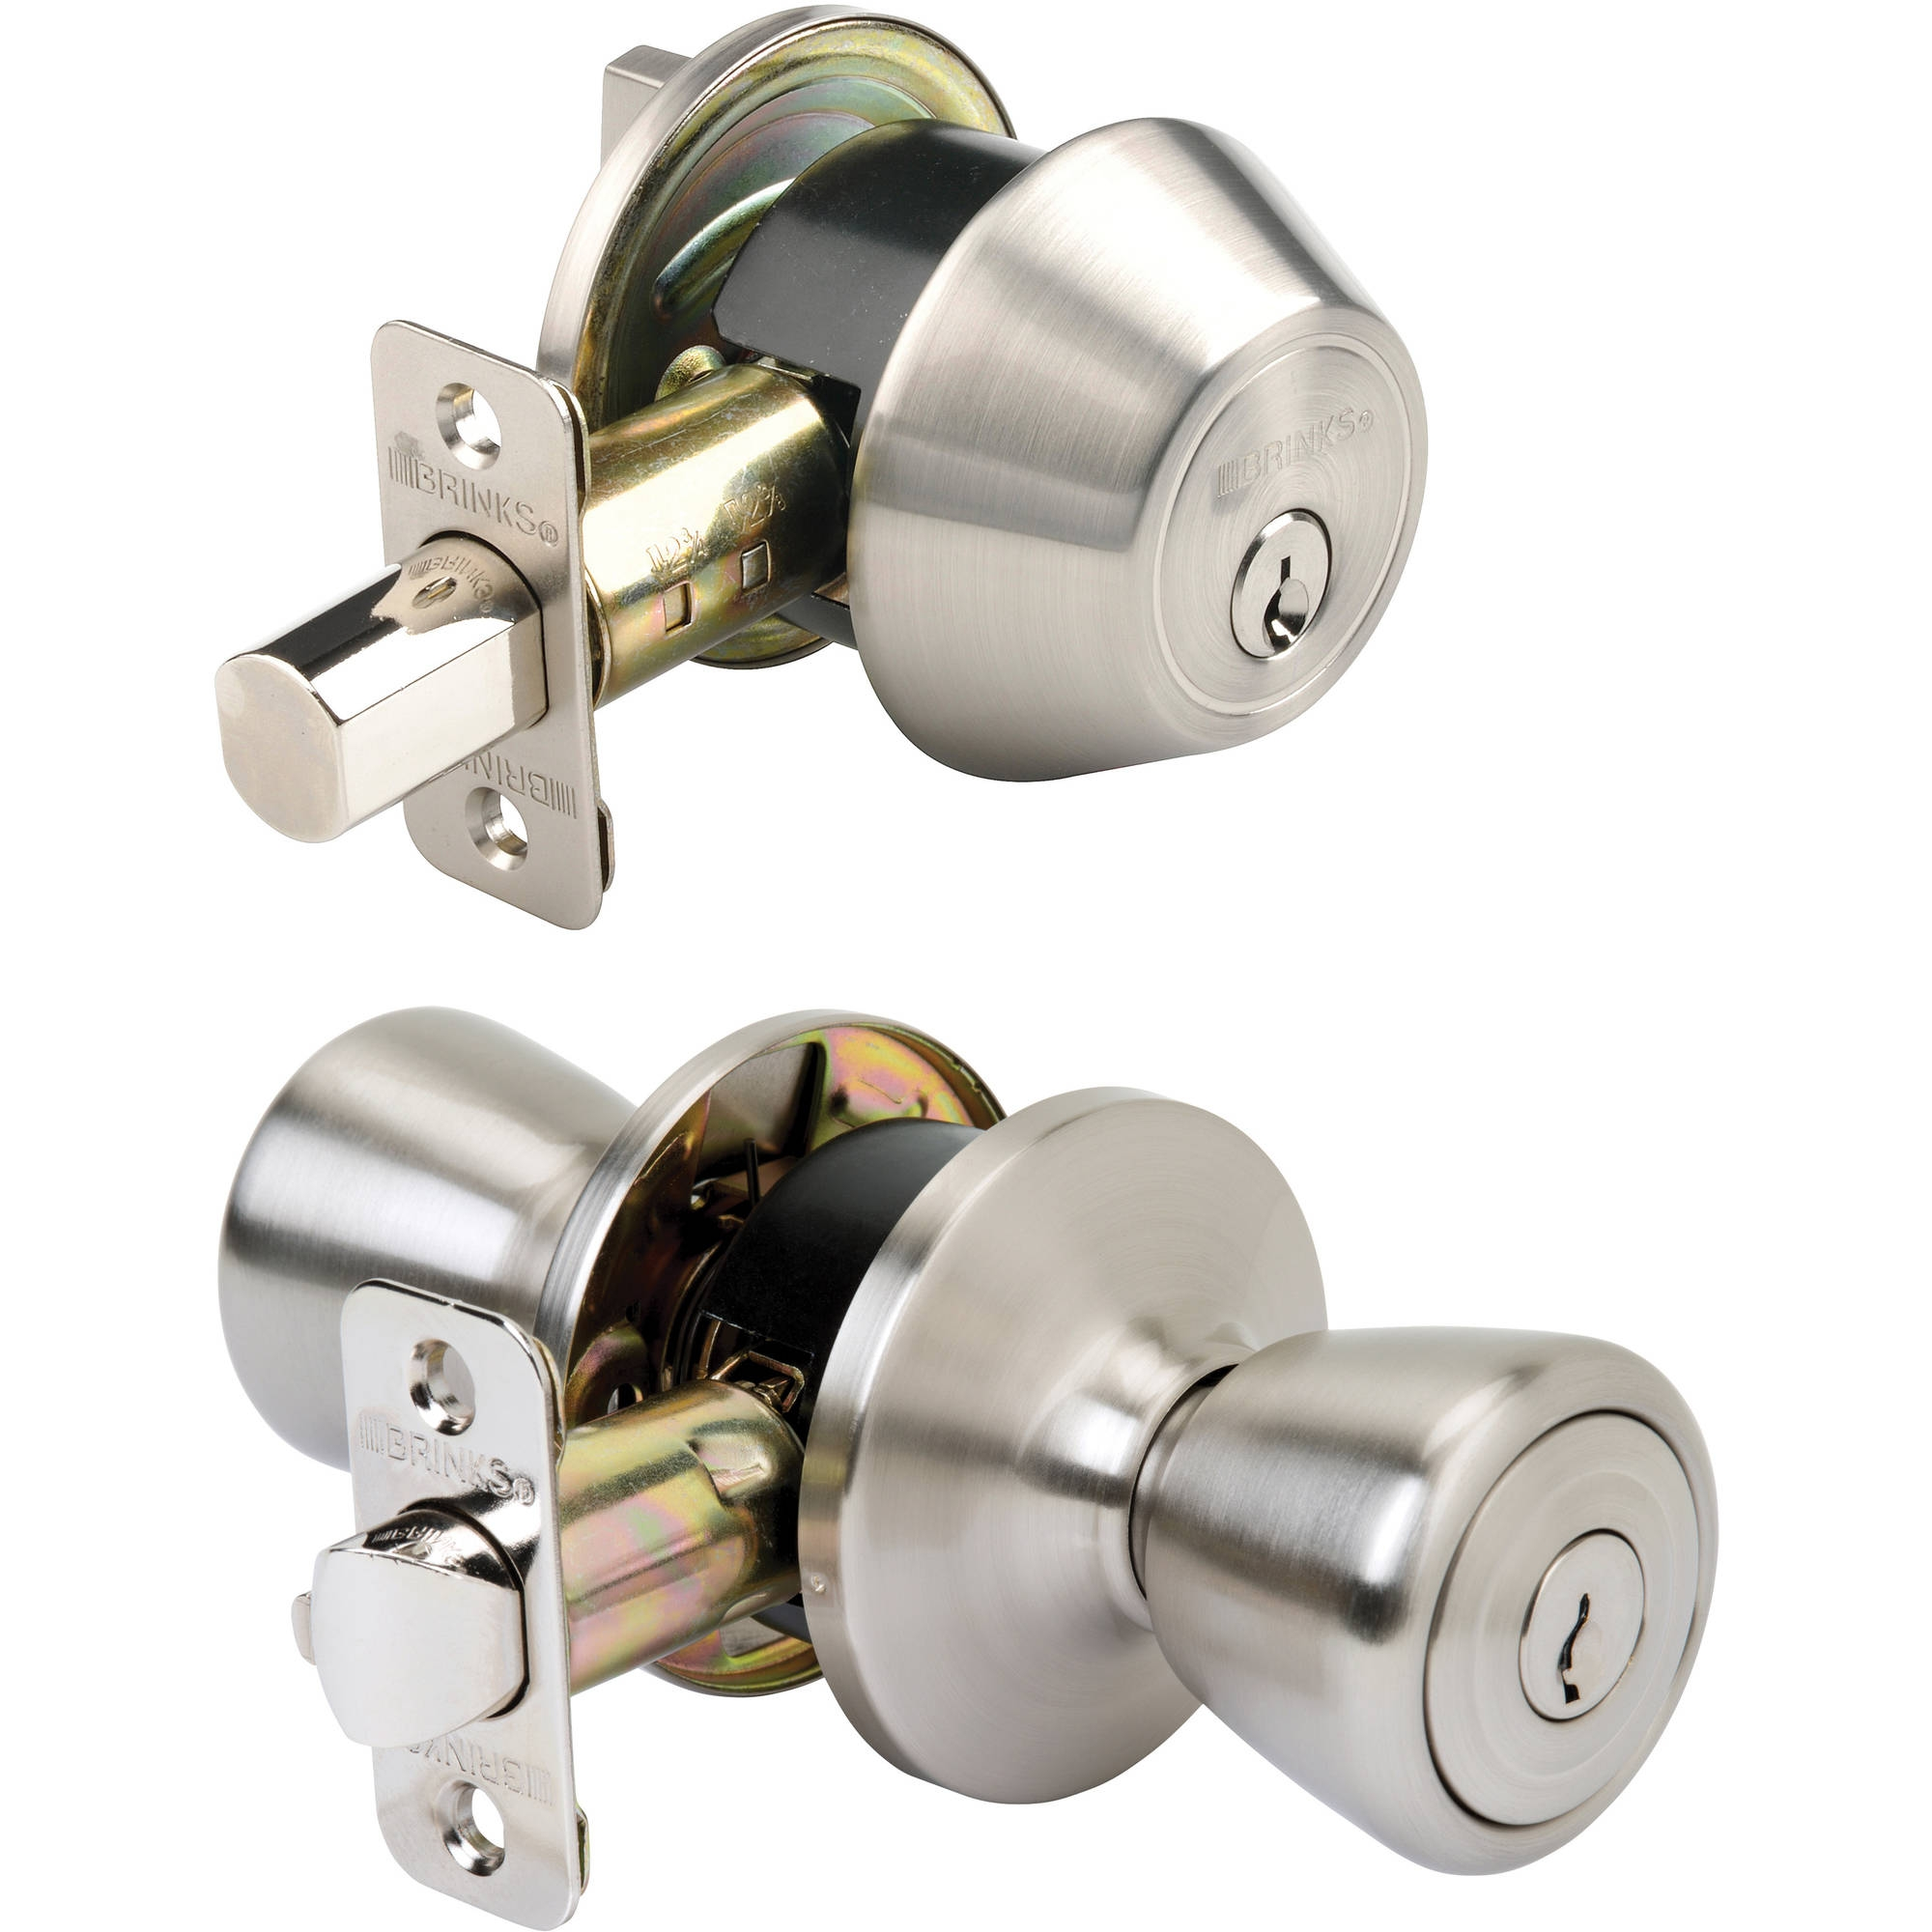 Permalink to Door Knob With Key Lock